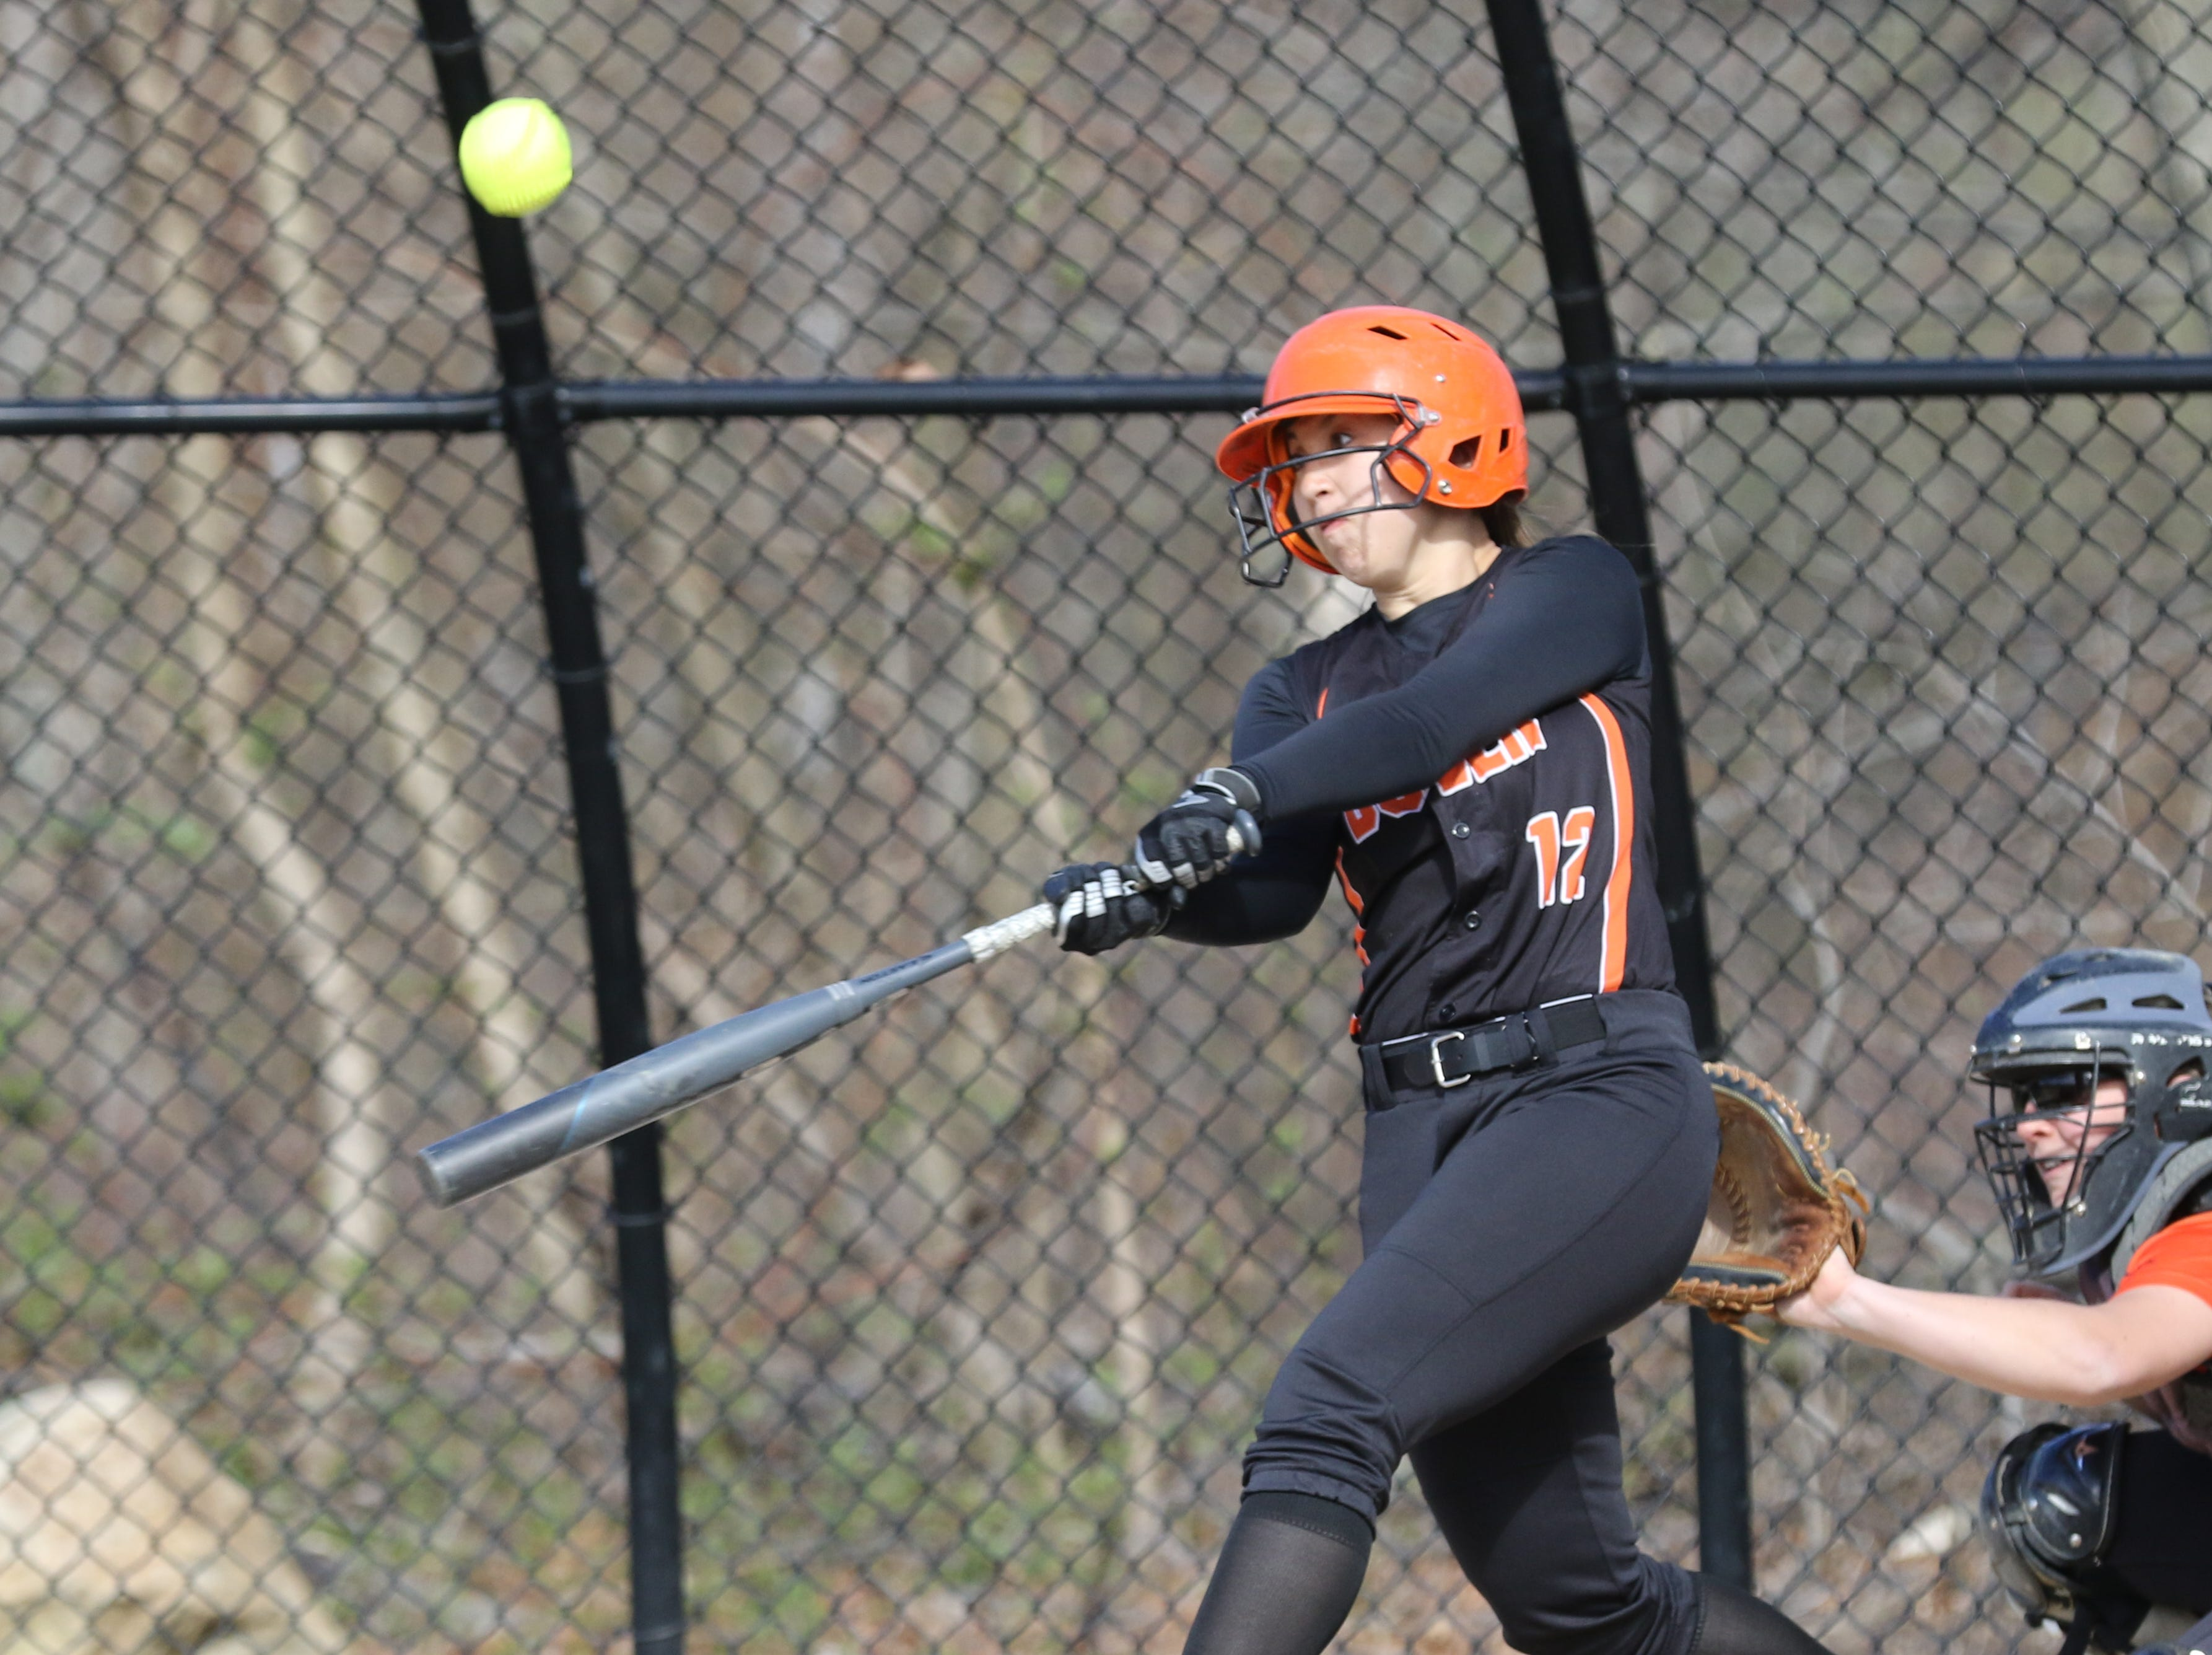 Brianna Koo of Dover hits the ball in the first inning.